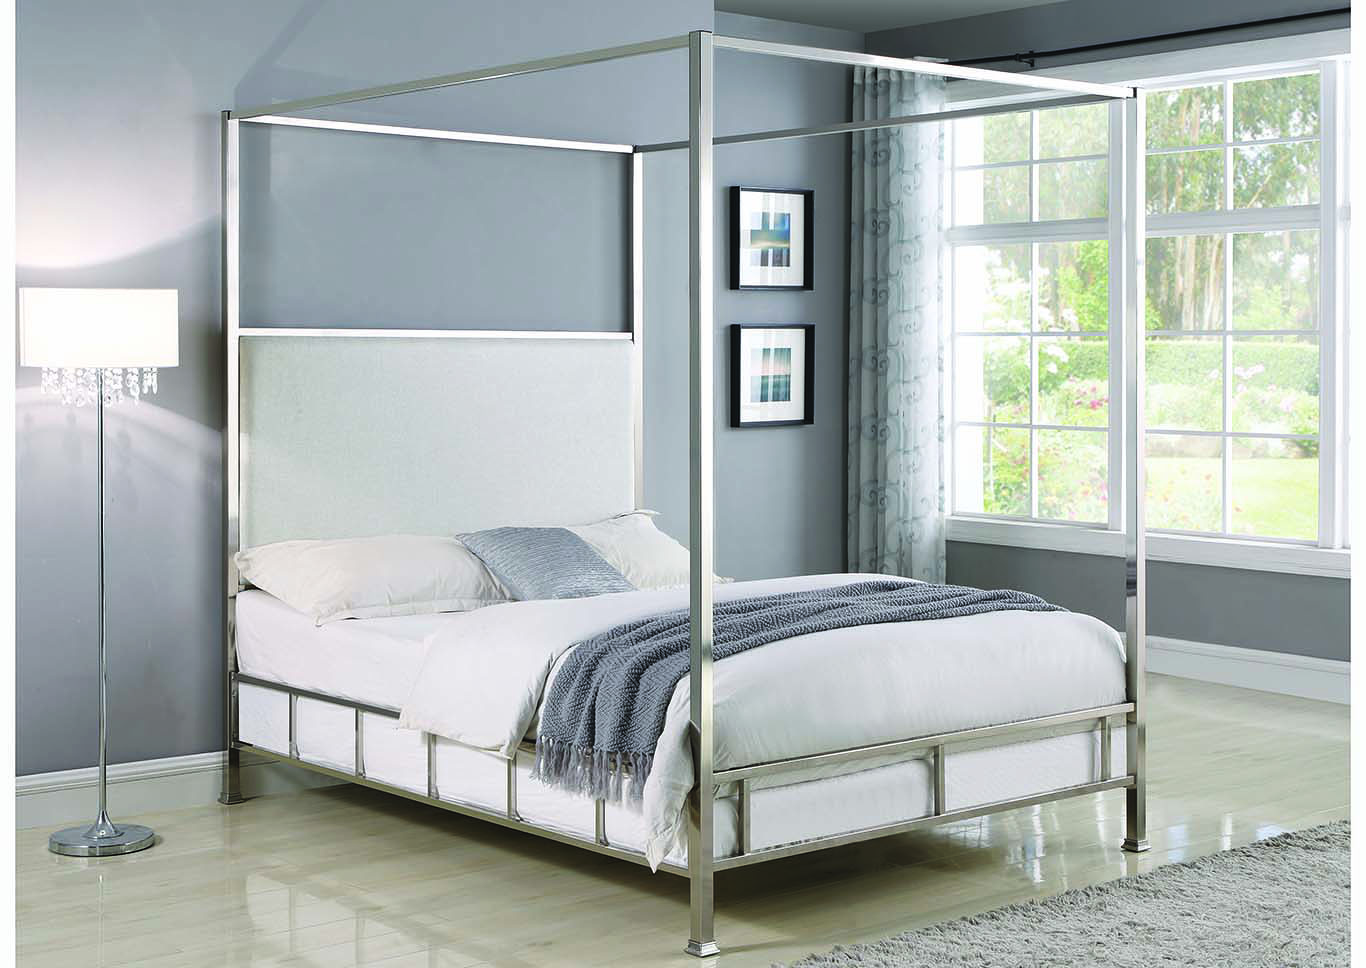 Chrome/Ivory Canopy Full BedCoaster Furniture & Big Box Furniture | Discount Furniture Stores in Miami Florida ...